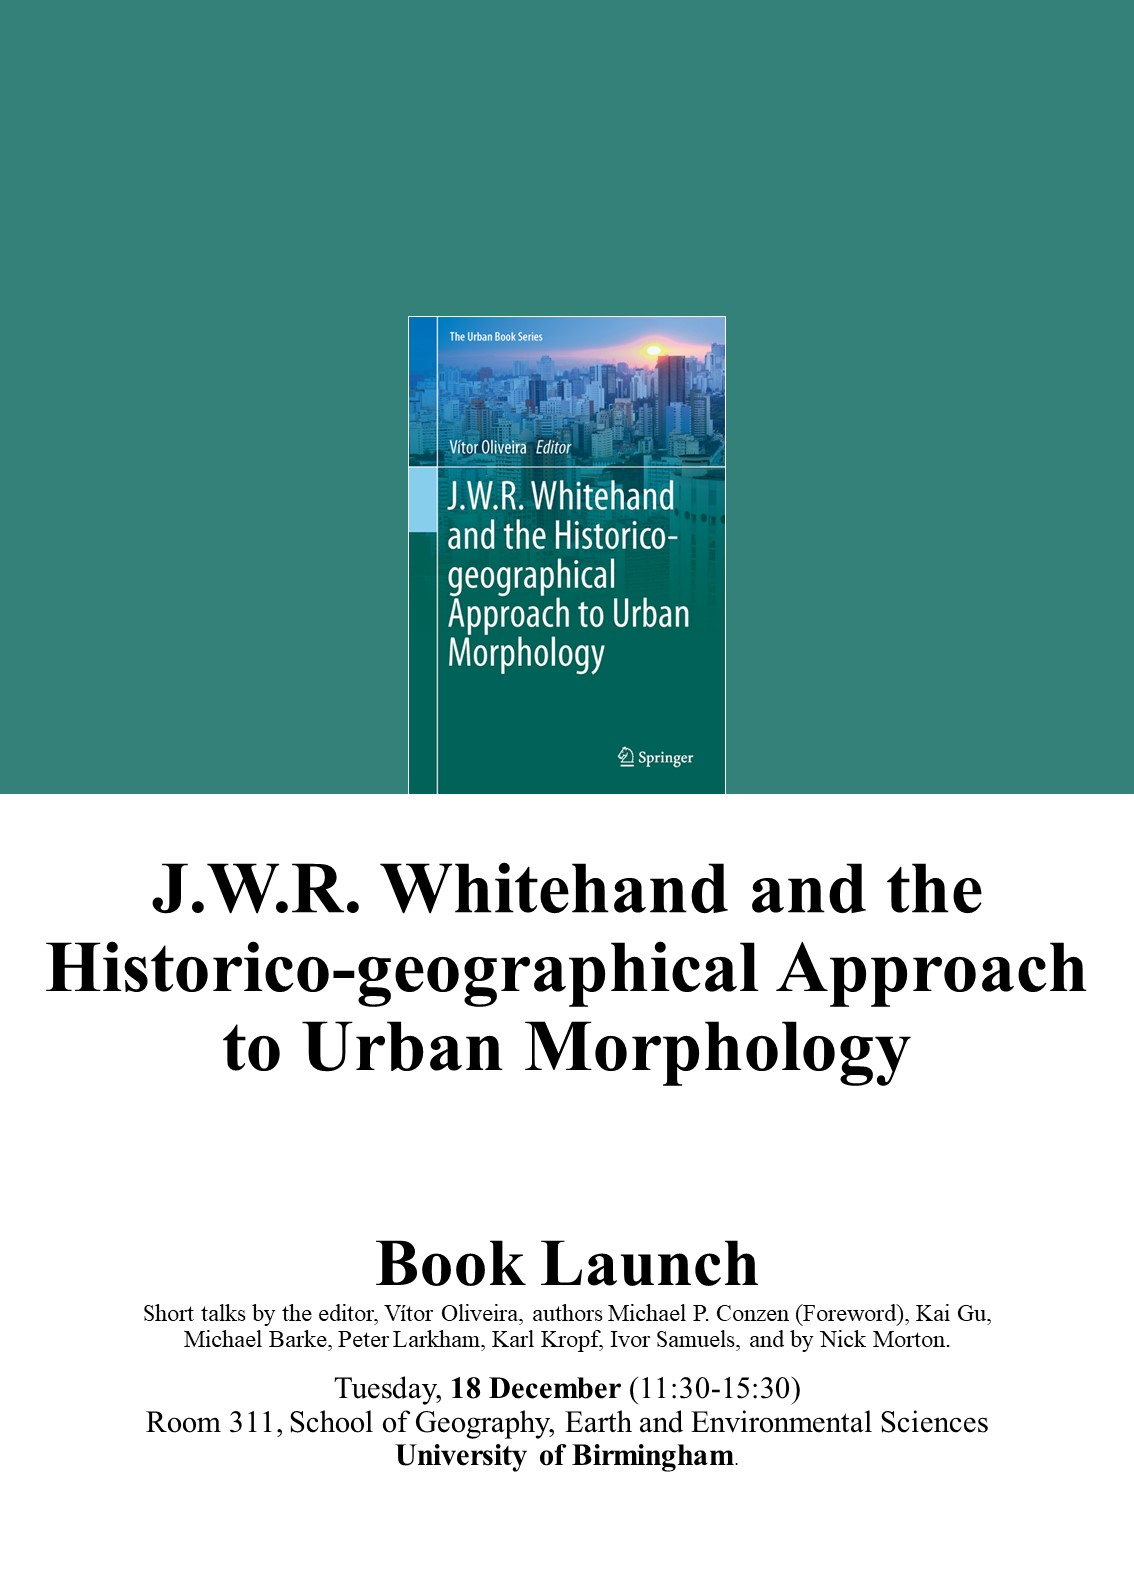 J.W.R. Whitehand and the Historico-geographical Approach to Urban Morphology.jpg